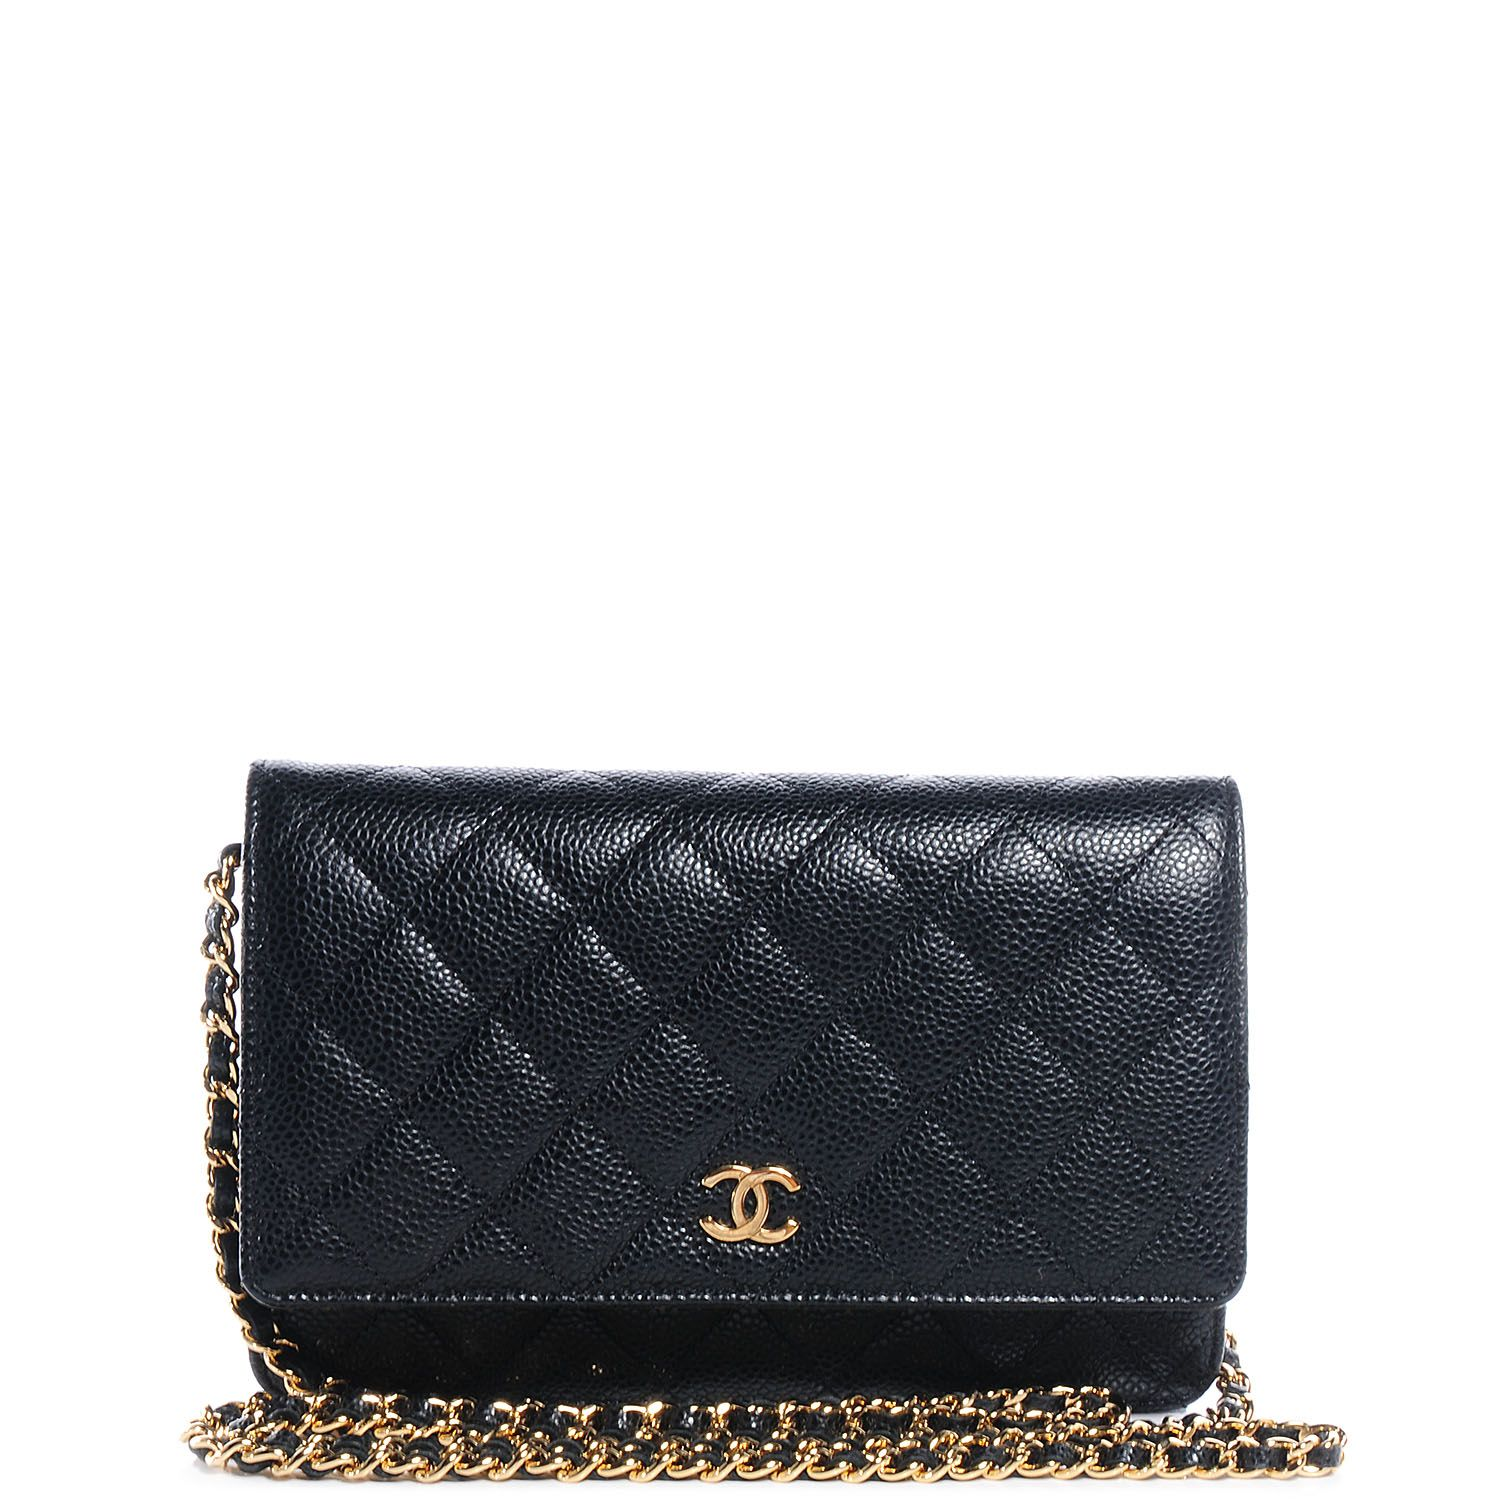 663b2516f7c4 Fashionphile - CHANEL Caviar Quilted Wallet on Chain WOC Black ...